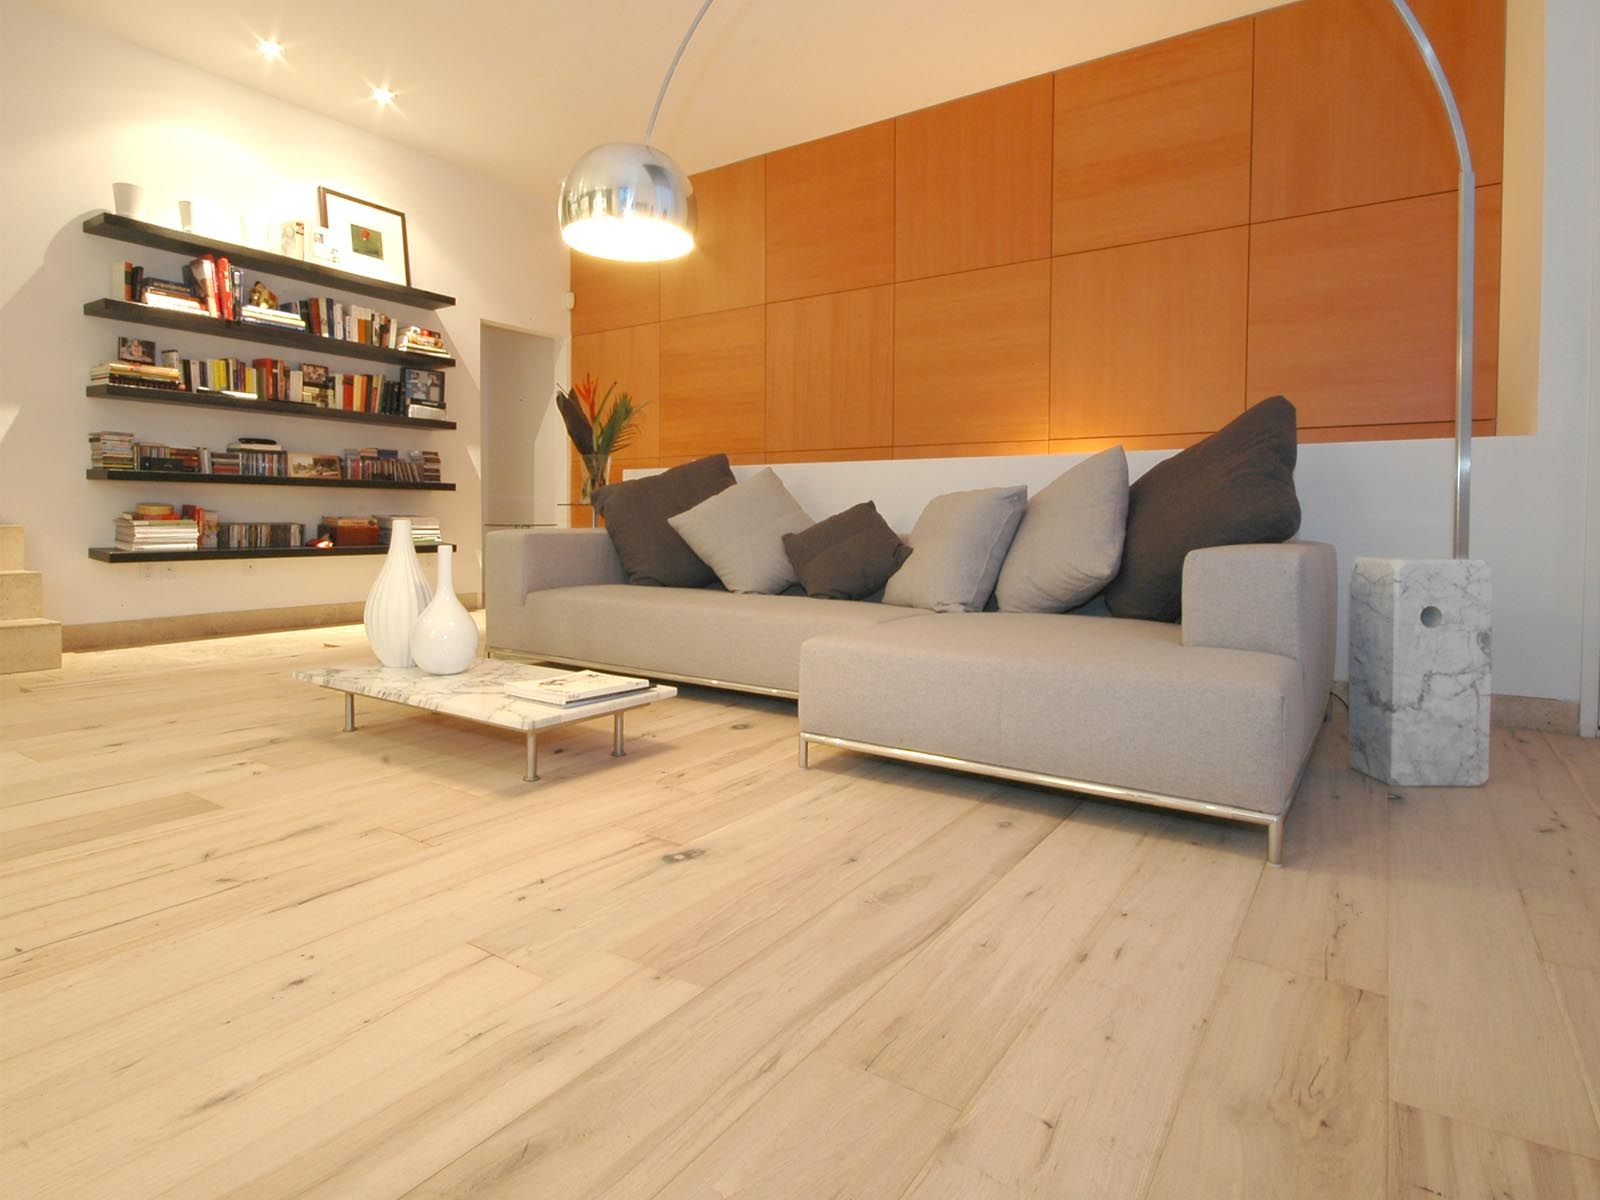 DuChateau Floors Chateau White Oiled Plank Flooring In Living Space.